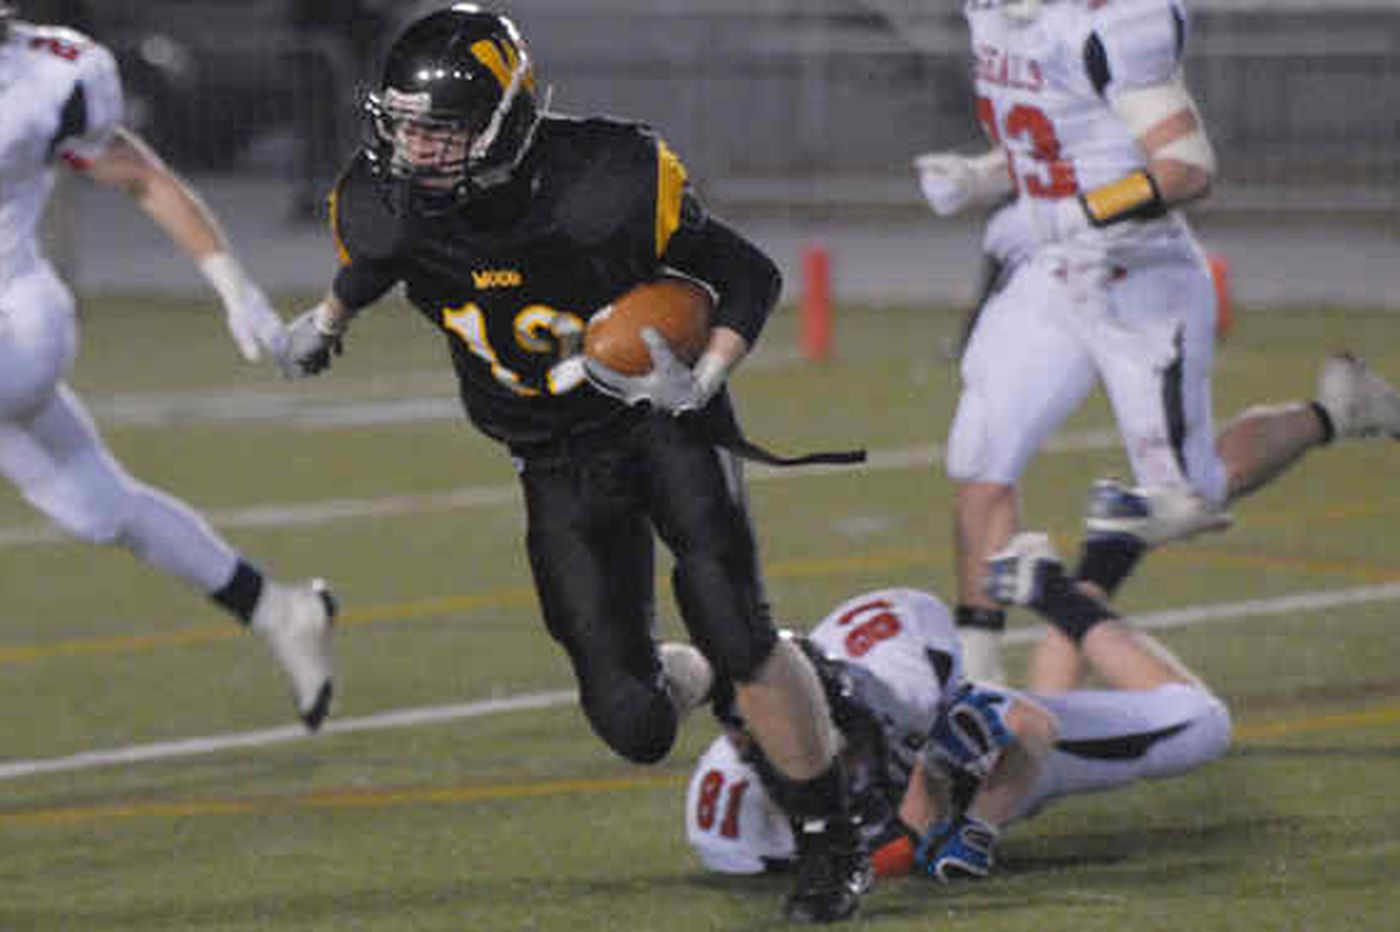 Archbishop Wood falls to Selinsgrove, 28-0